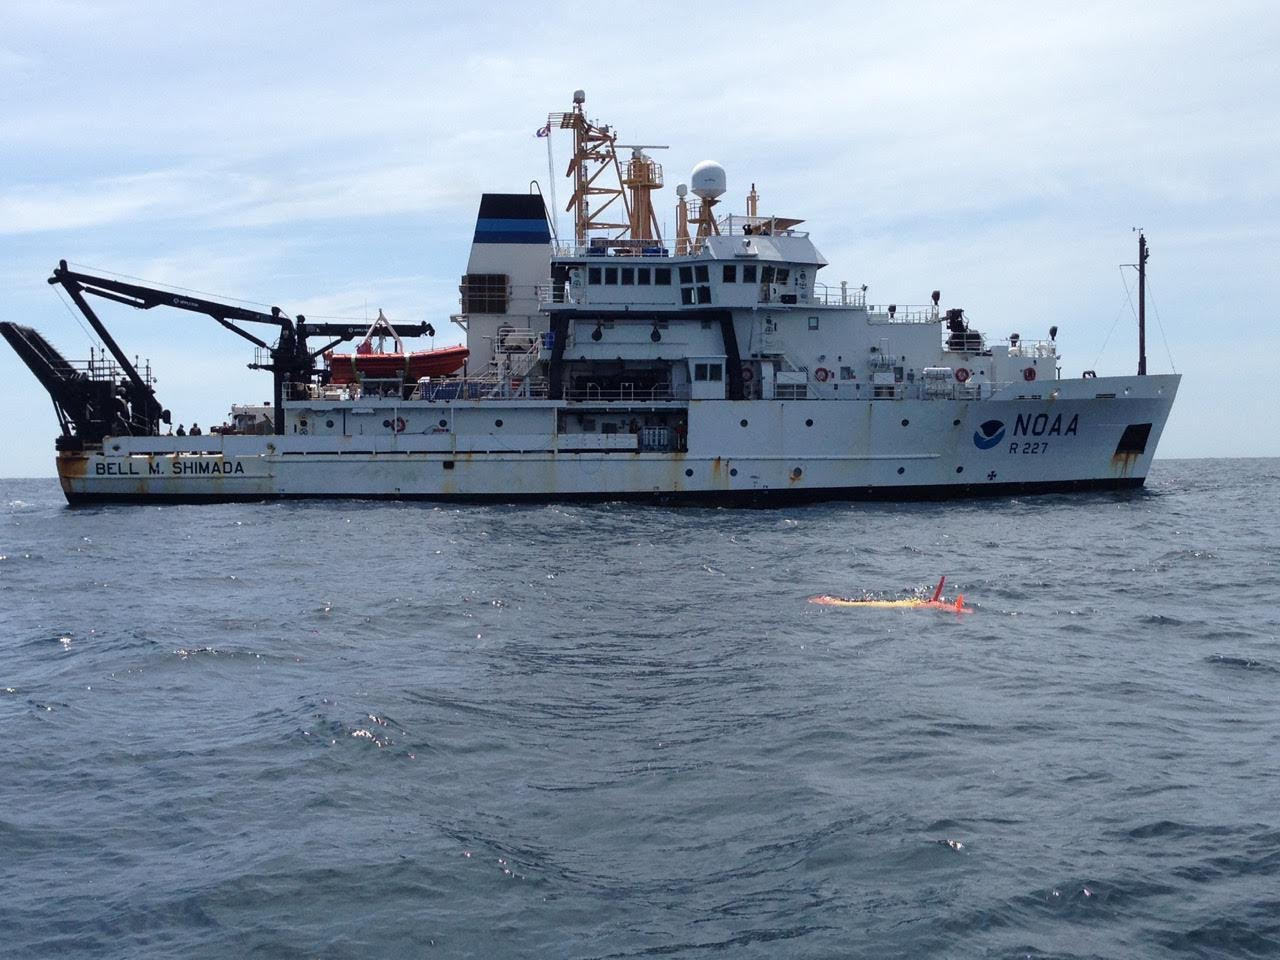 Scientists aboard NOAA Ship Bell M. Shimada oversee eAUV deployment. Image credit: NOAA